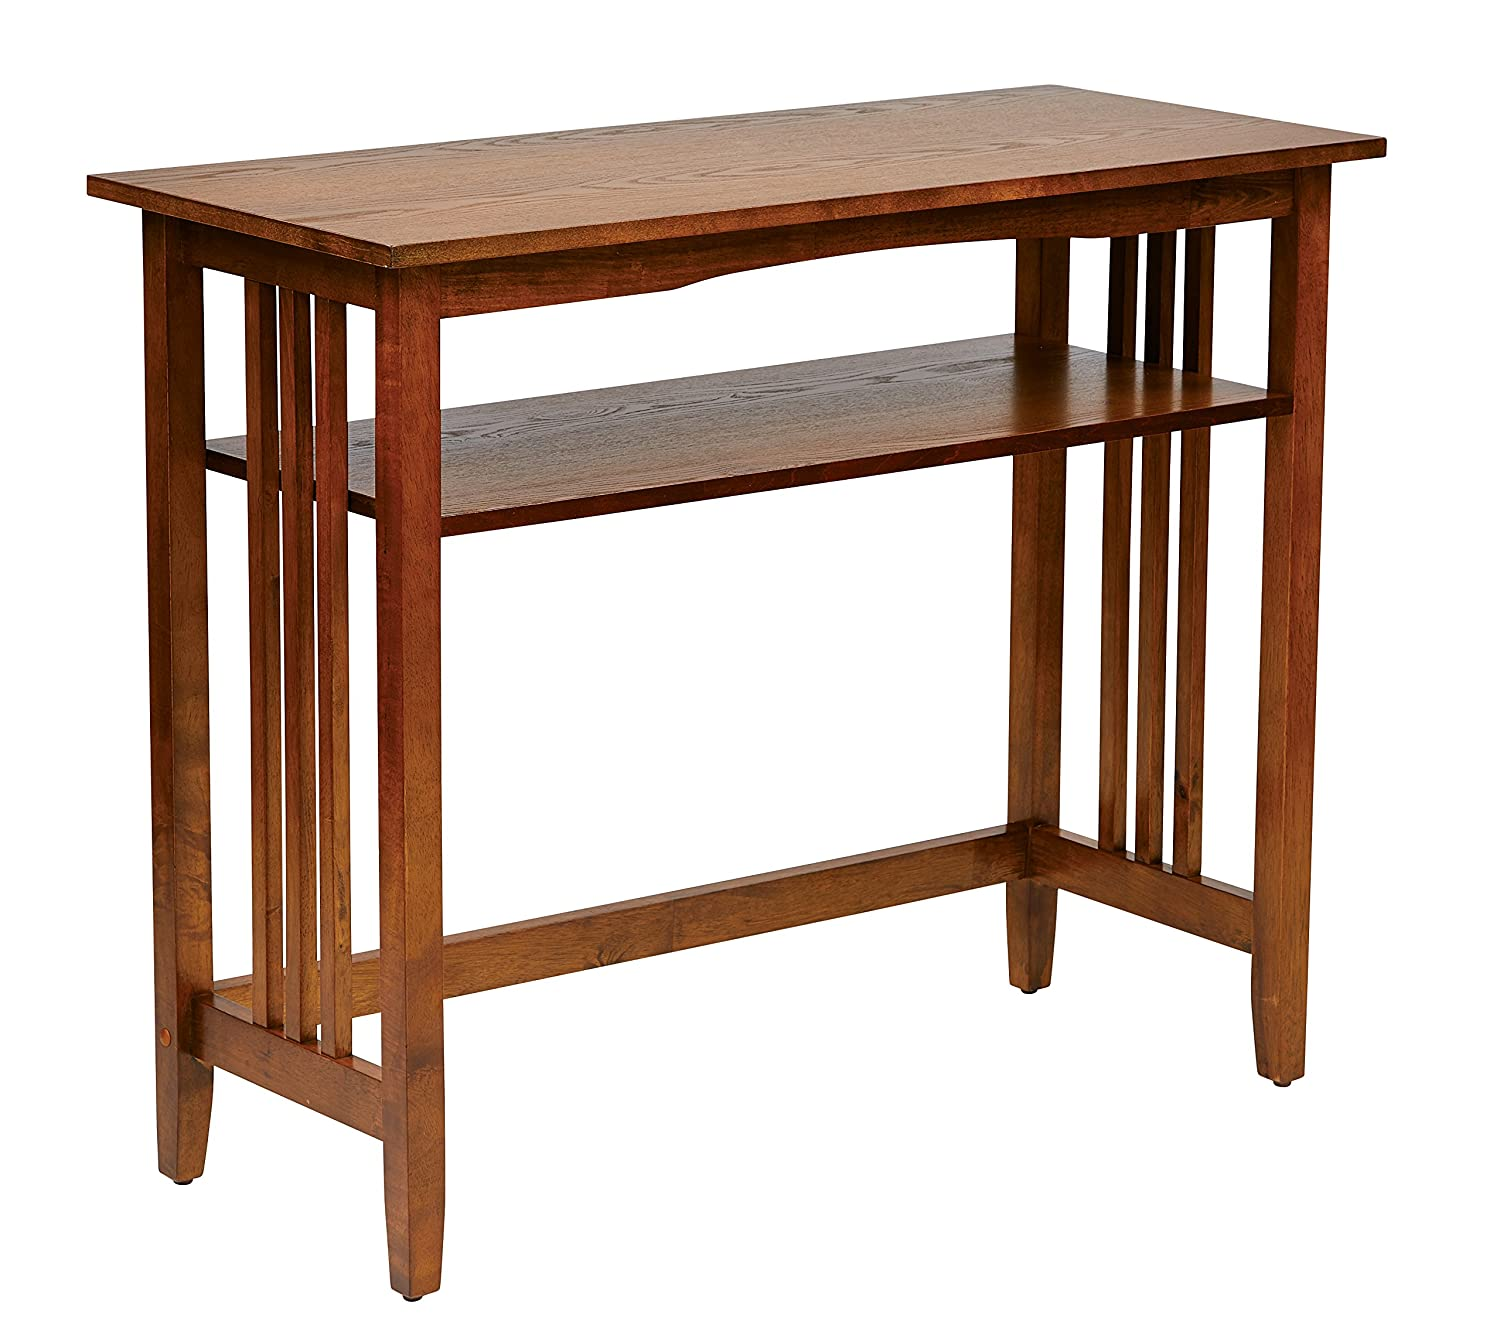 amazoncom office star sierra solid wood foyer table ash finish kitchen dining - Foyer Table